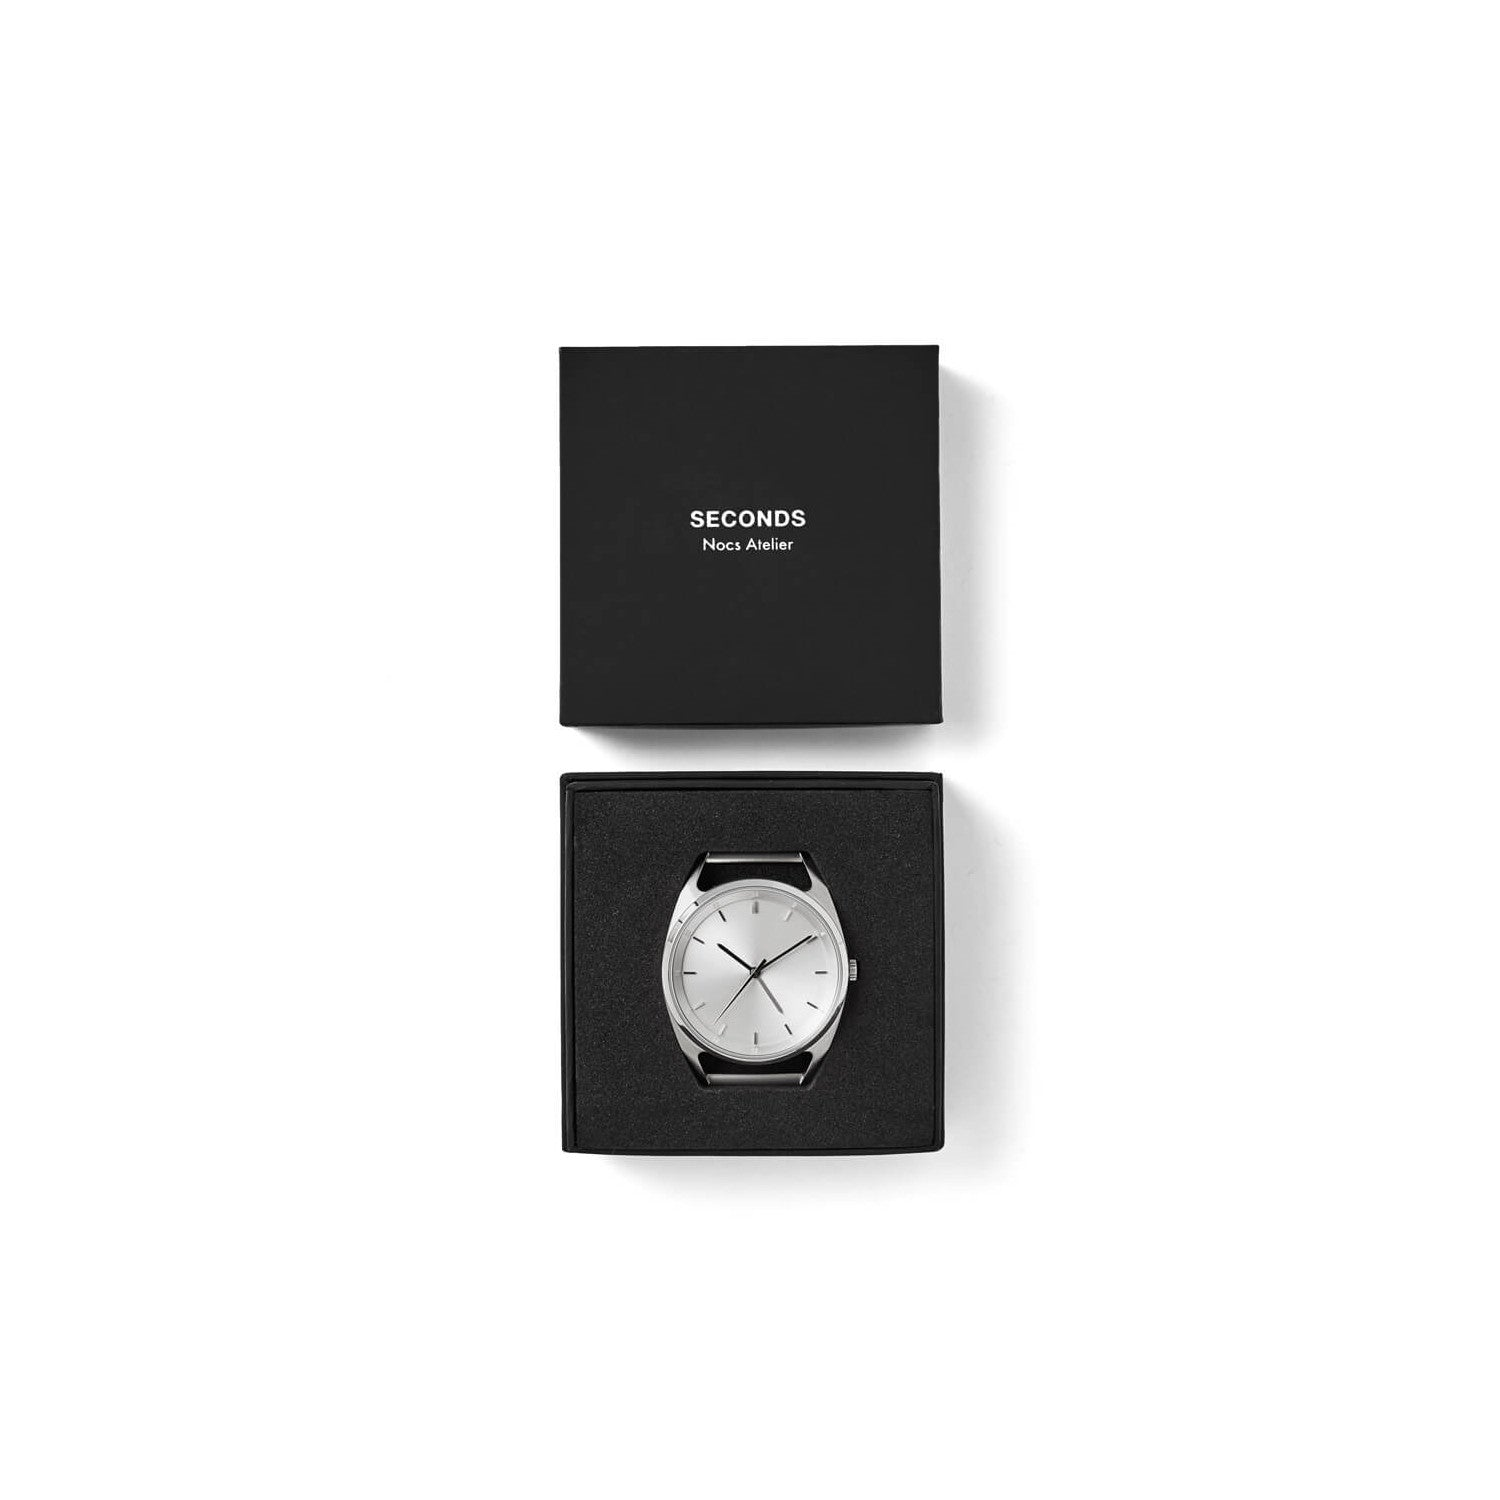 Seconds GMT – Silver 40 by Nocs Atelier